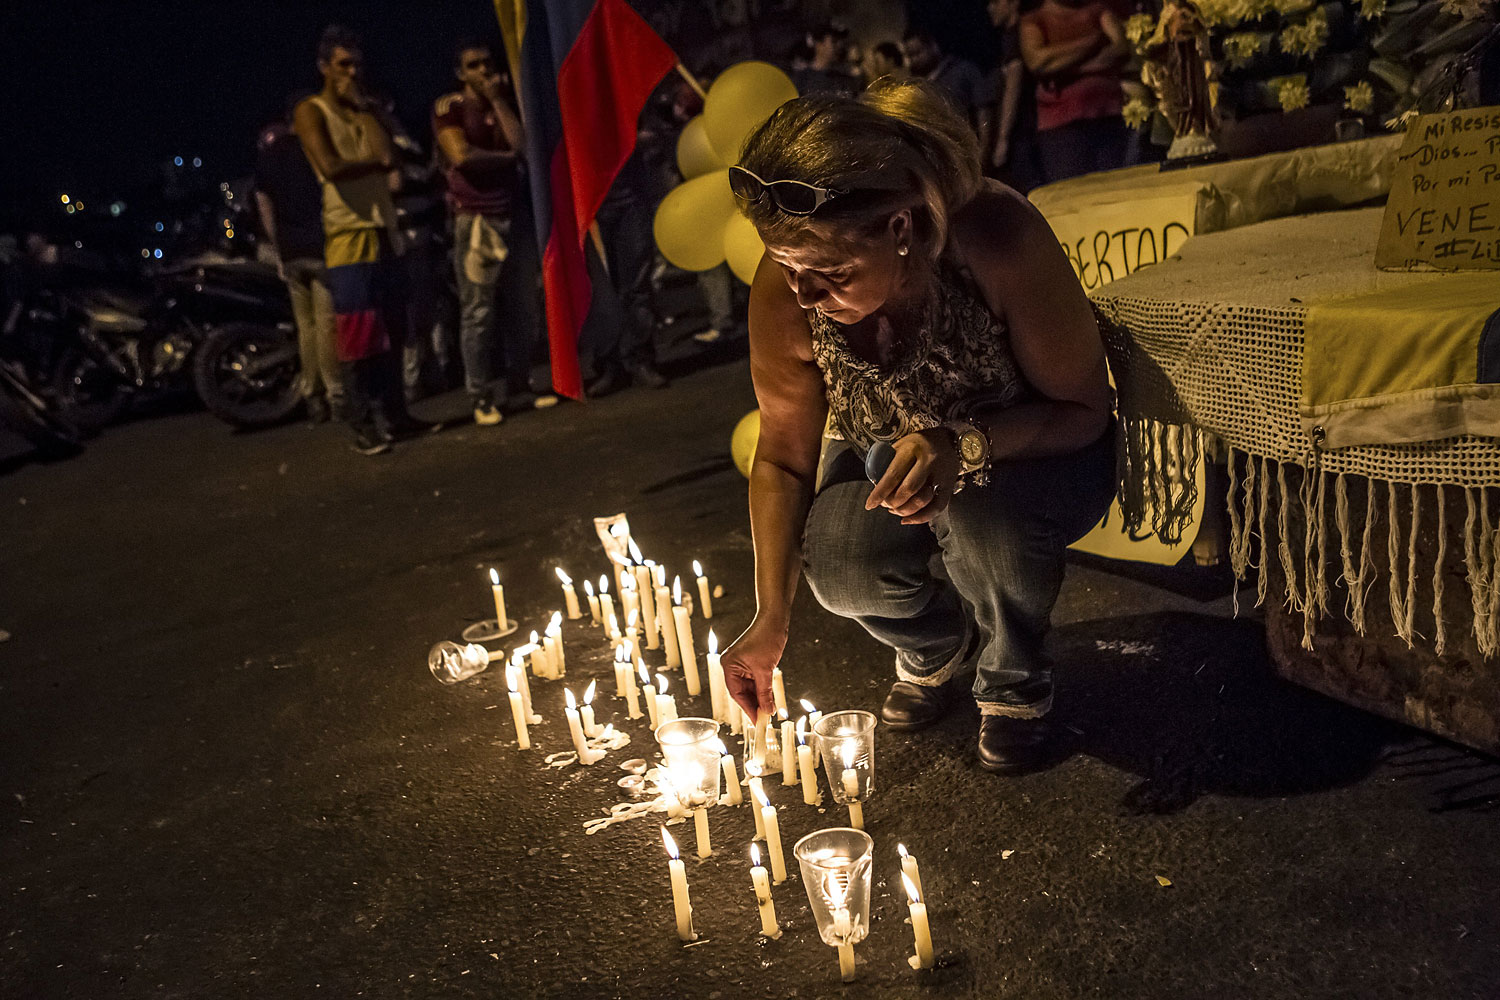 Community members hold mass to pray for the end to violence against protesters in a barricaded area in San Cristobal, Feb. 23, 2014.